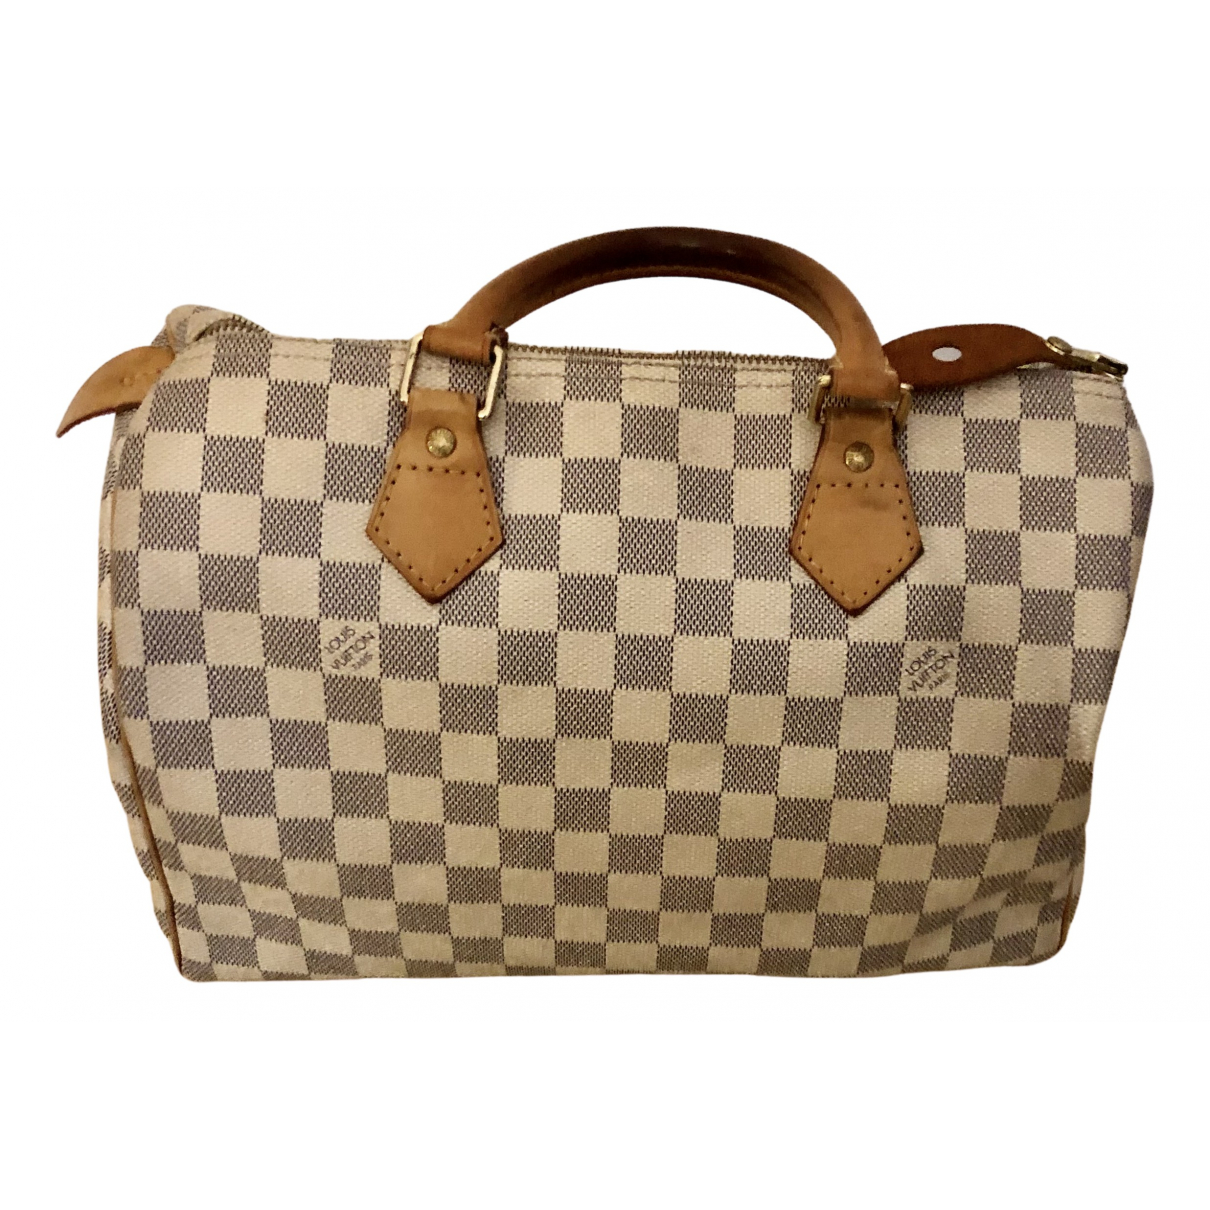 Louis Vuitton Speedy Ecru Cloth handbag for Women \N